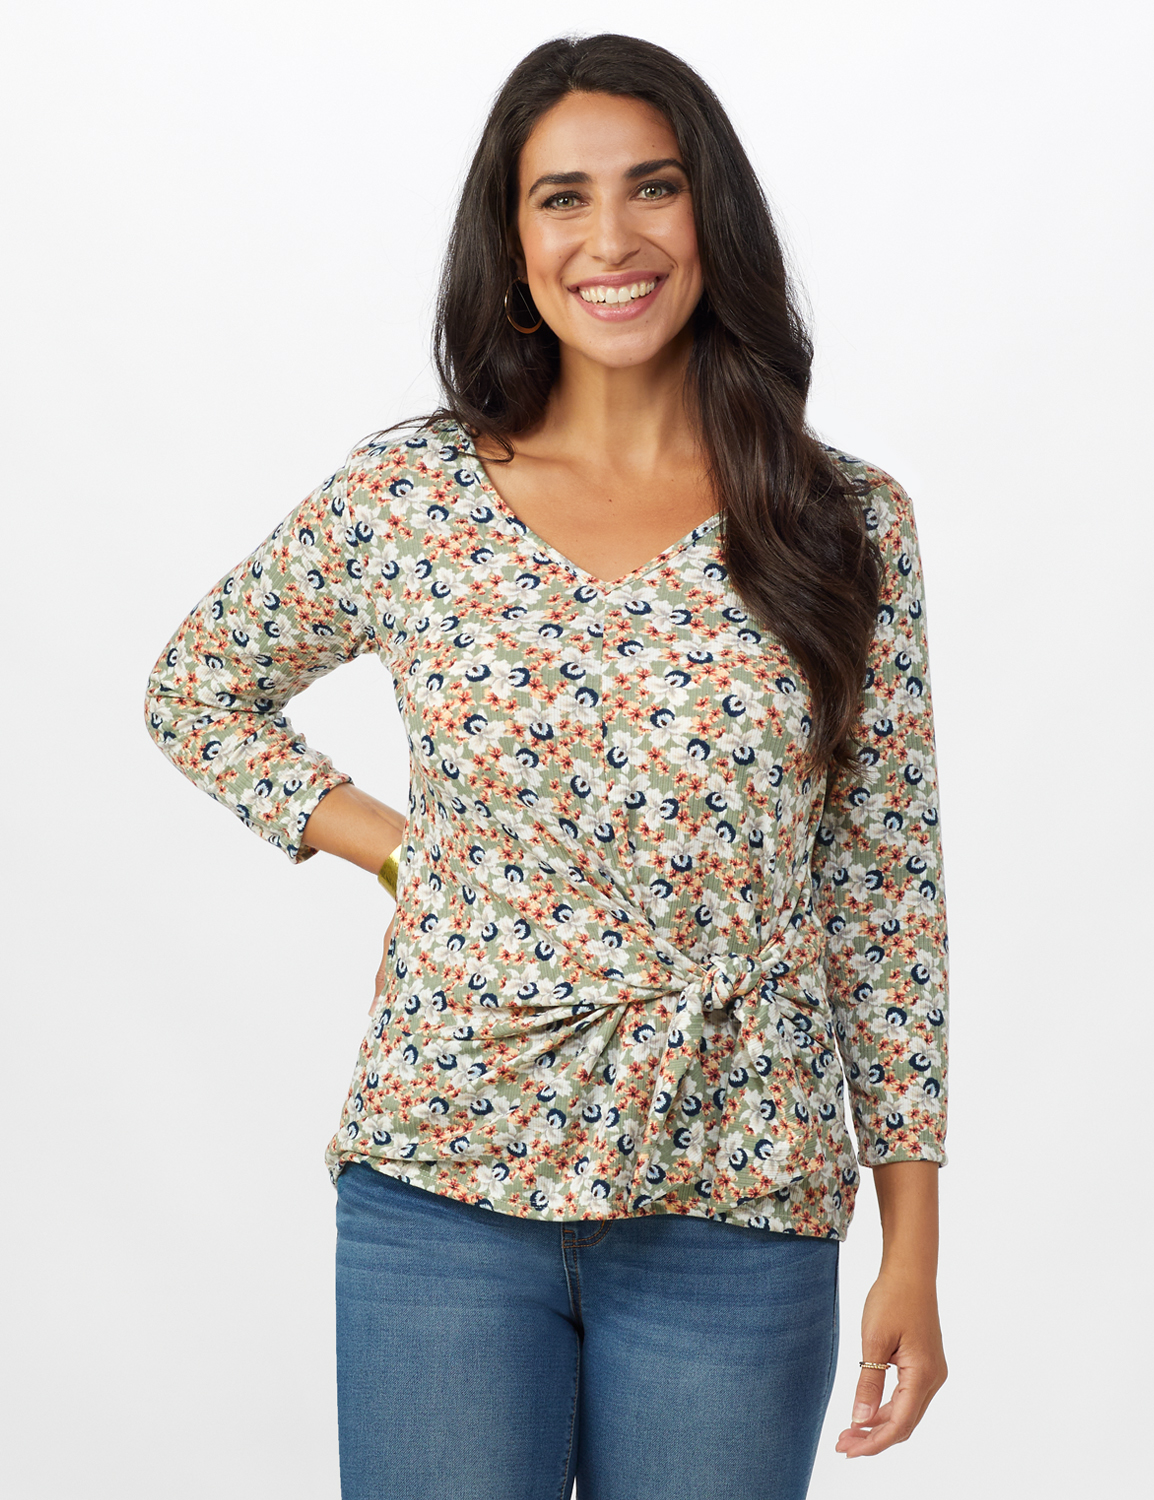 Small Floral Tie Front Knit Top -Sage/Peach - Front